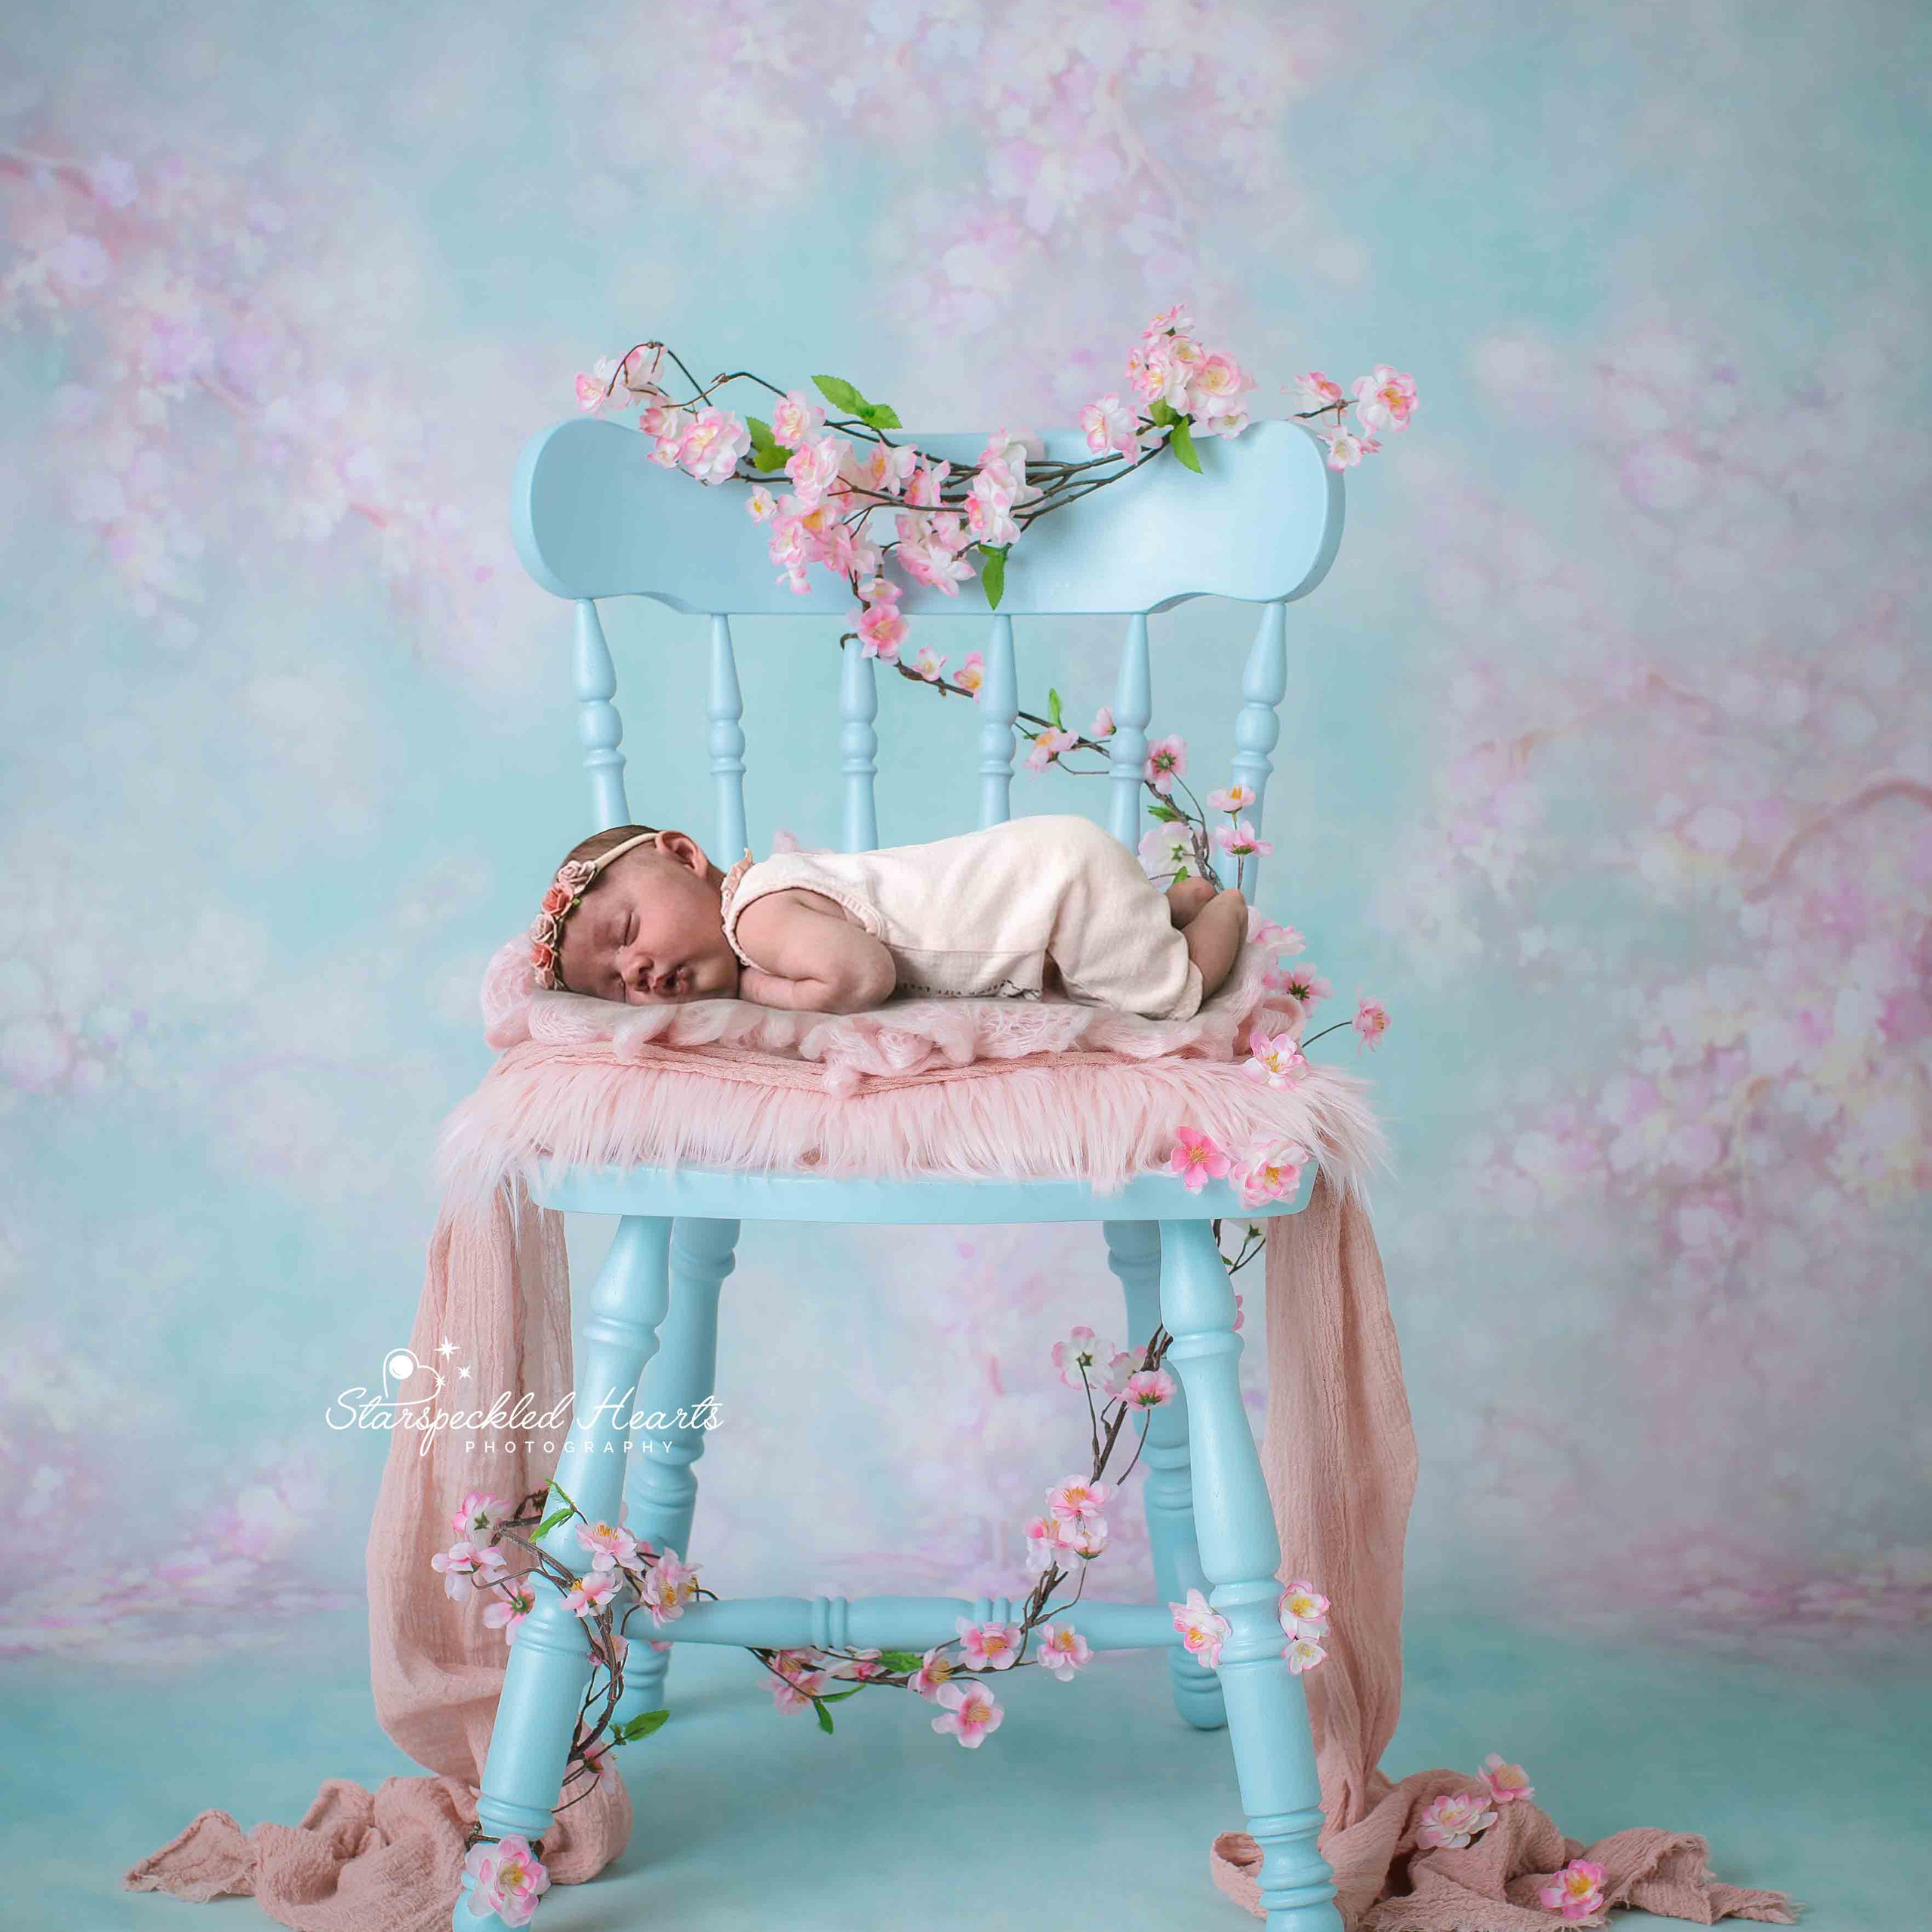 sleeping baby girl laying on a blue chair surrounded by pink flowers